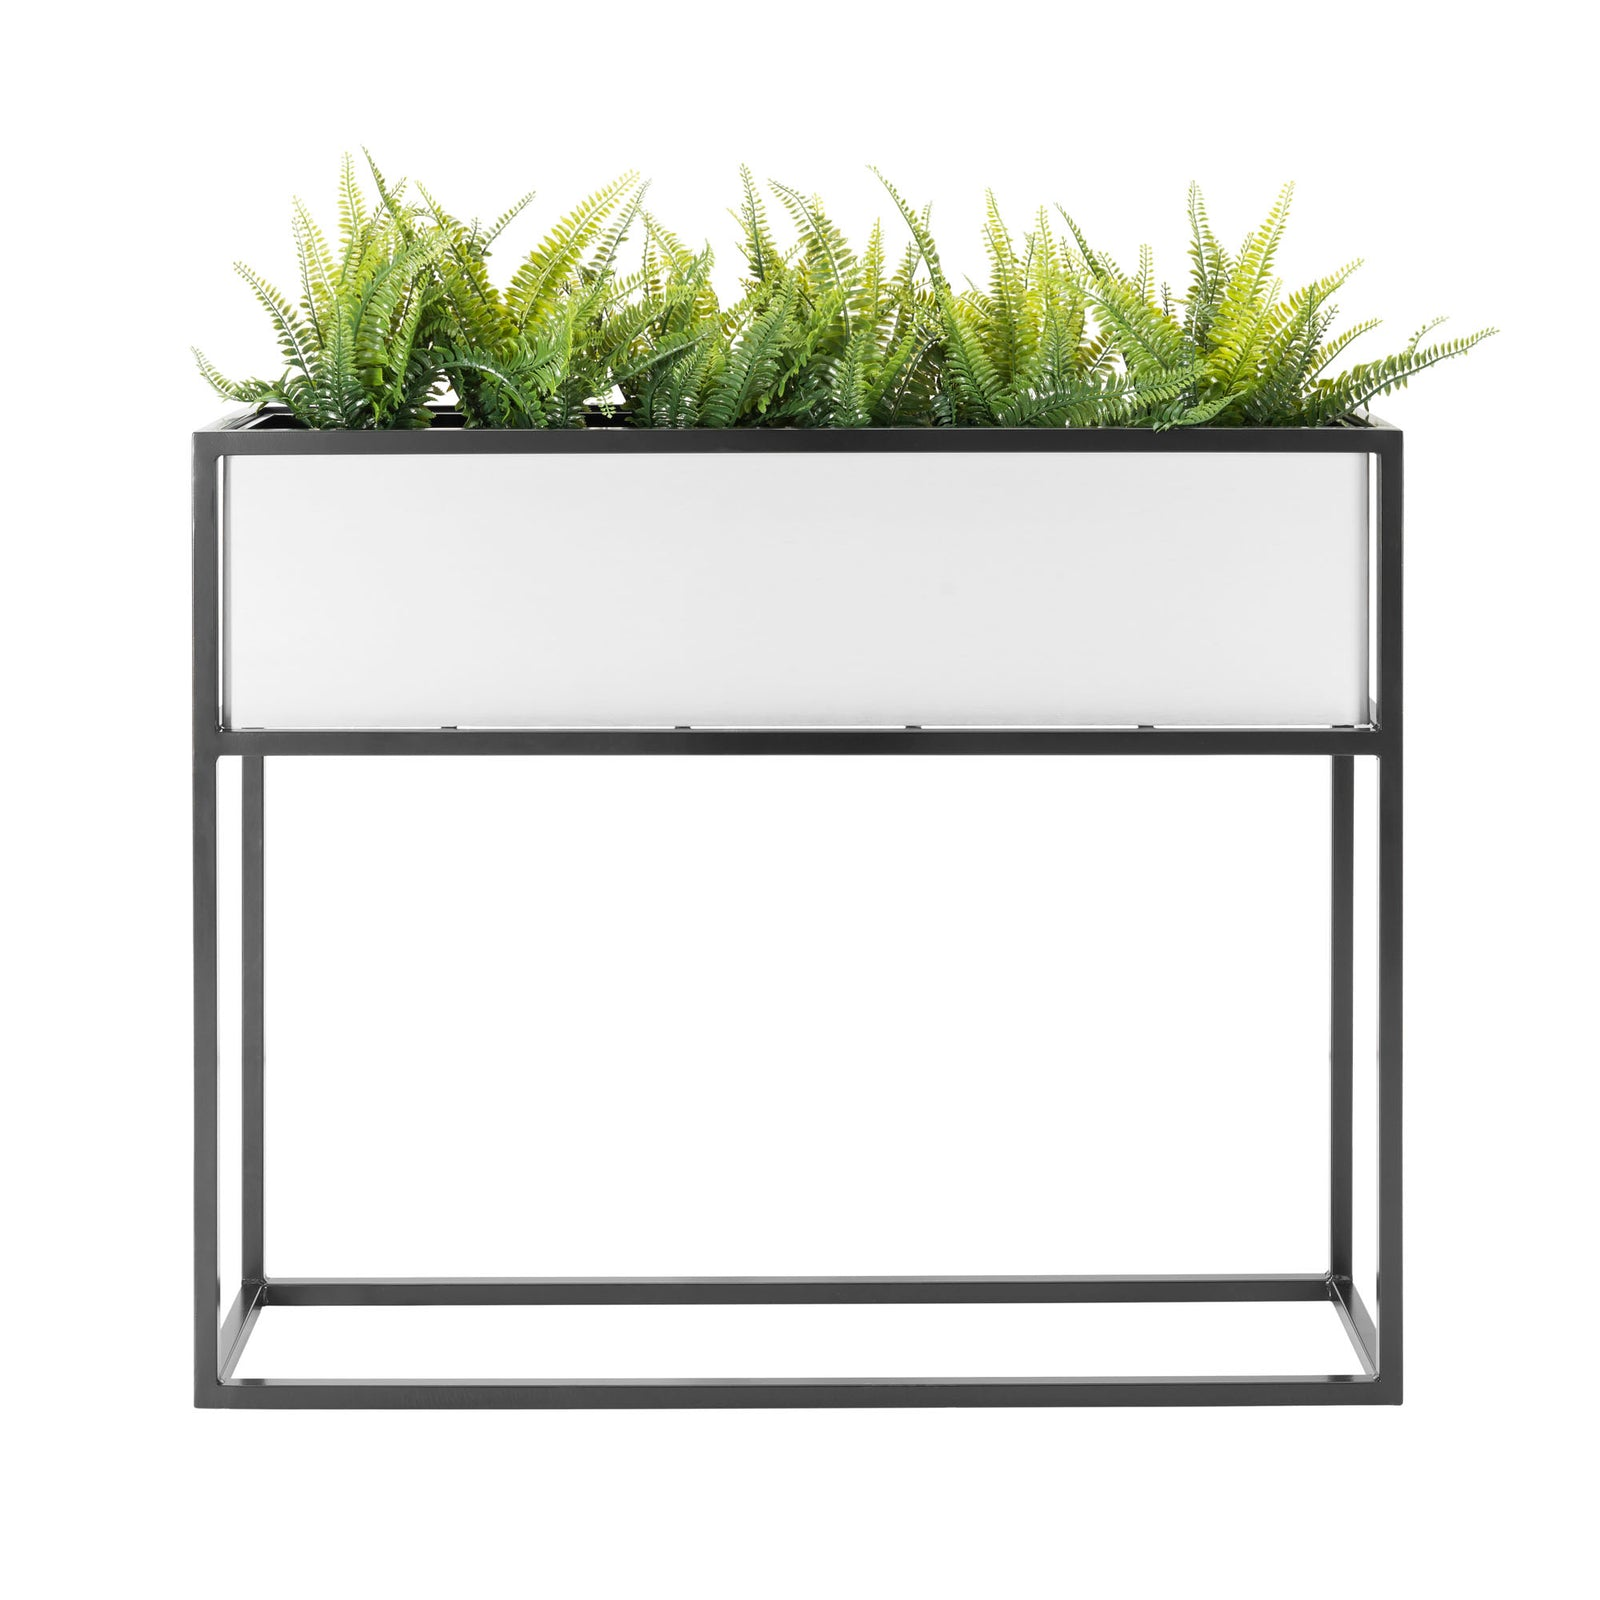 Madeira Barrier Planter - Metal, Steel Plant Container, Patio Divider, Planter for Beer Garden